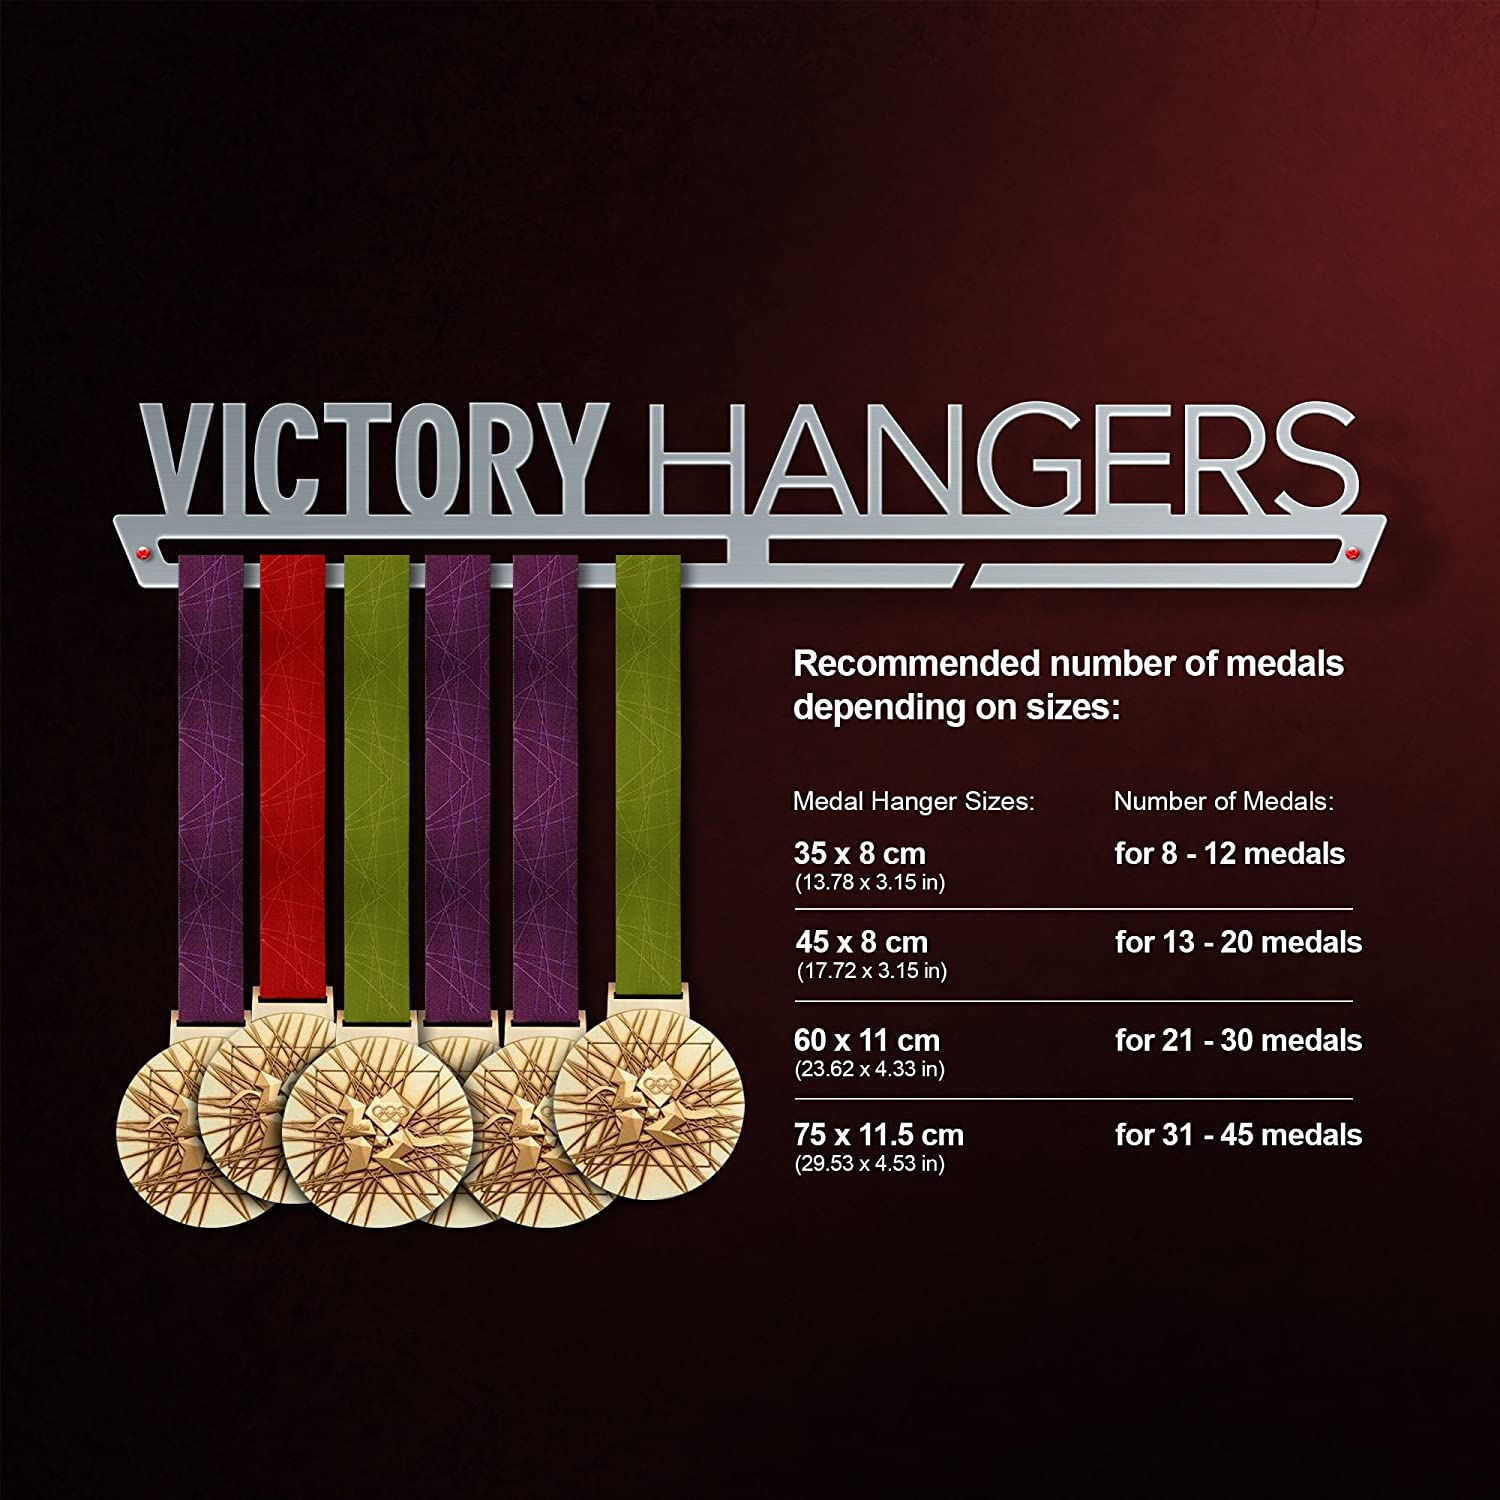 Stainless Steel Medal Display Motivational Medal Hanger by VictoryHangers VICTORY HANGERS Nothing Is Impossible Medal Hanger Display V1 The Best Gift for Champions !